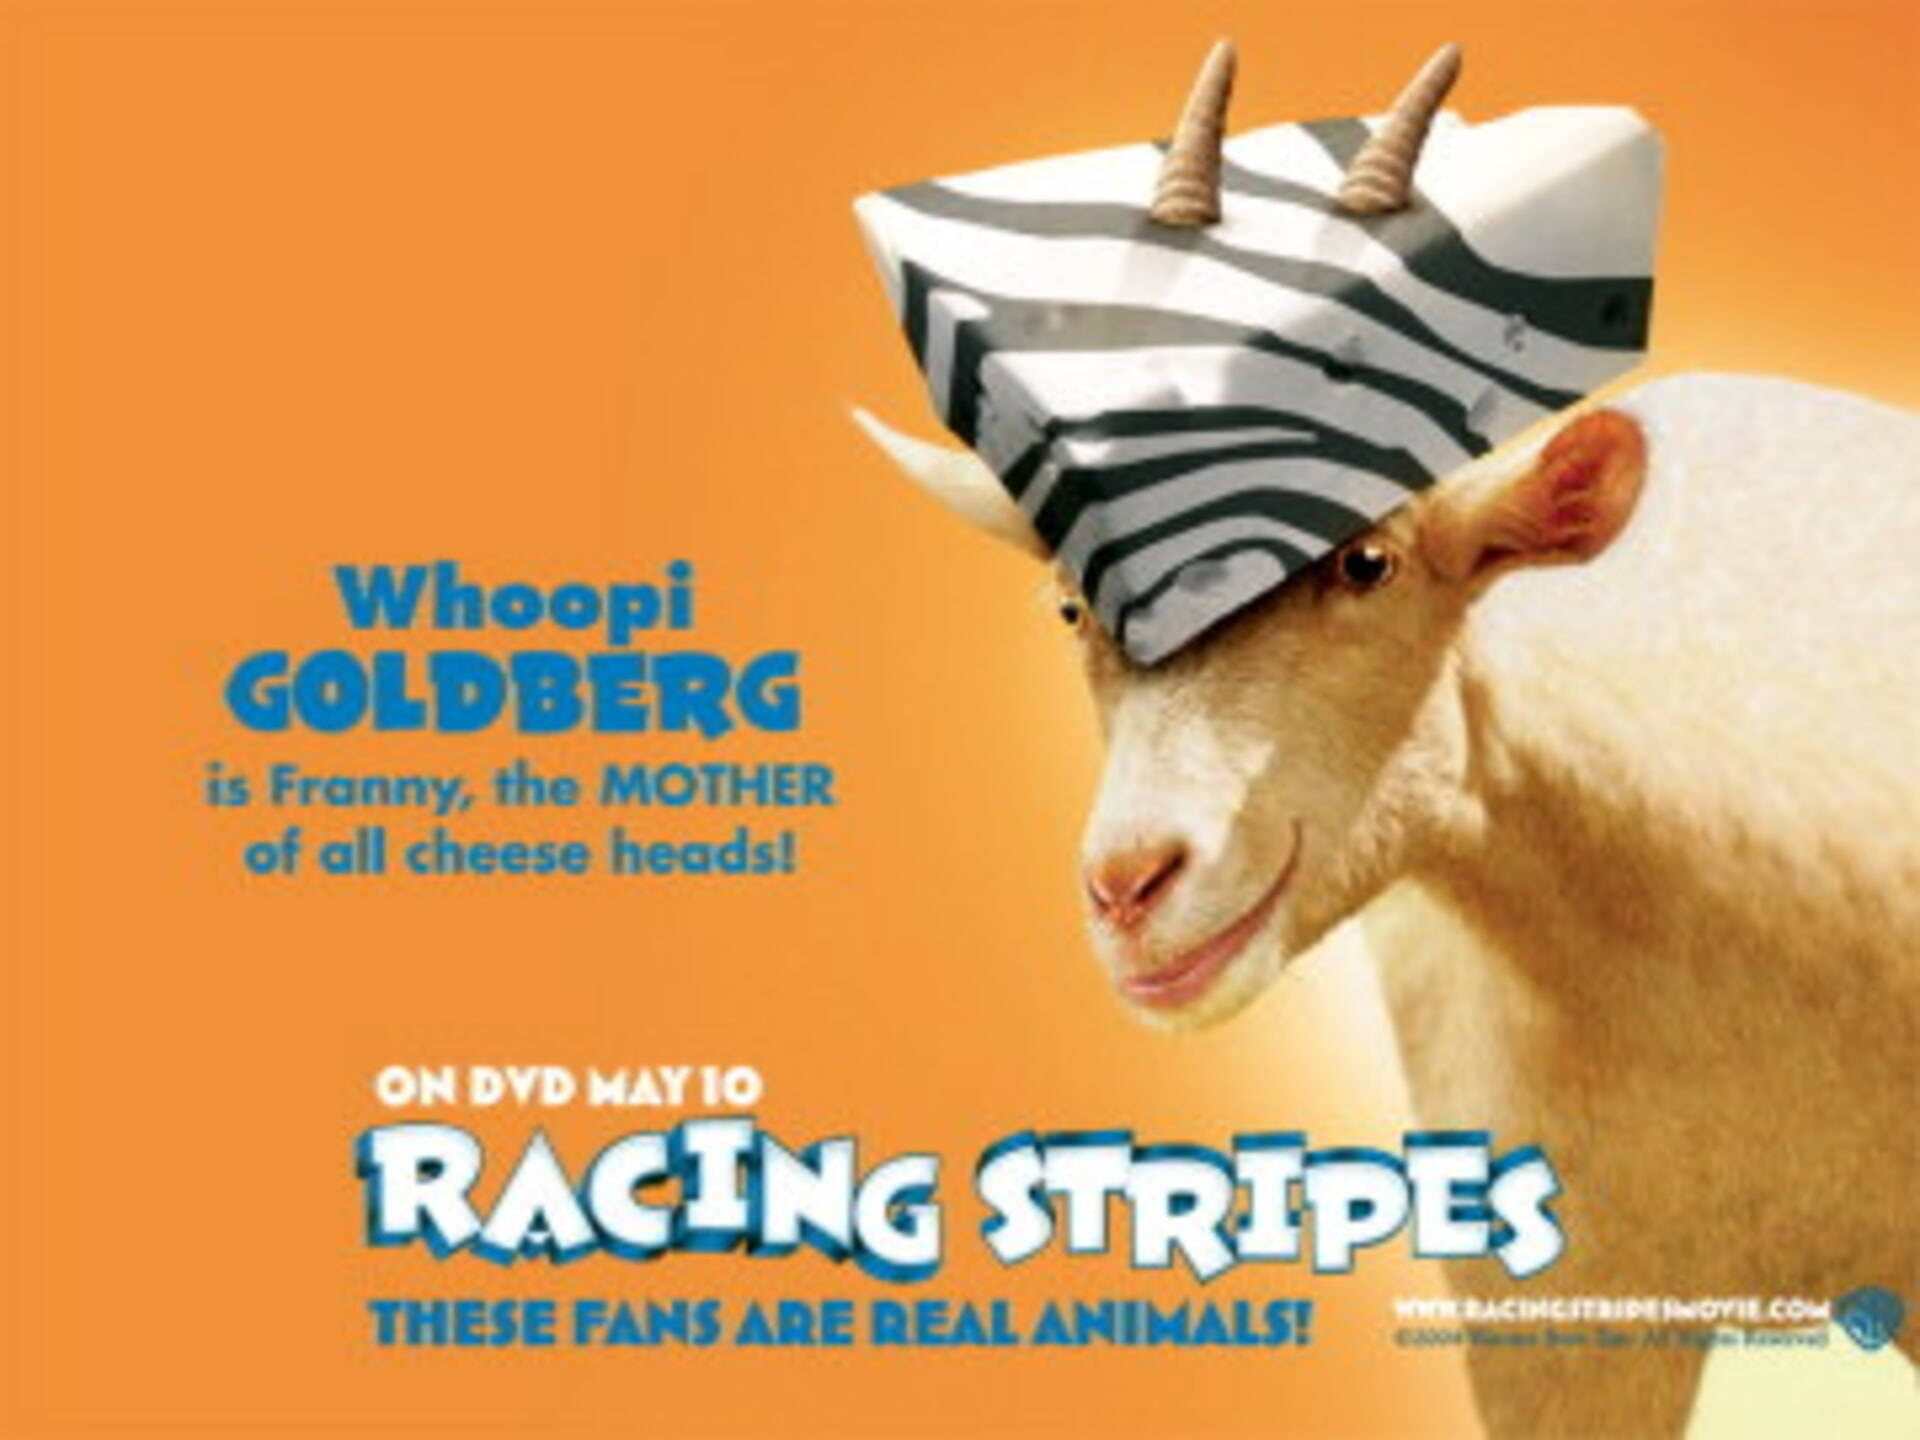 Racing Stripes - Image 46